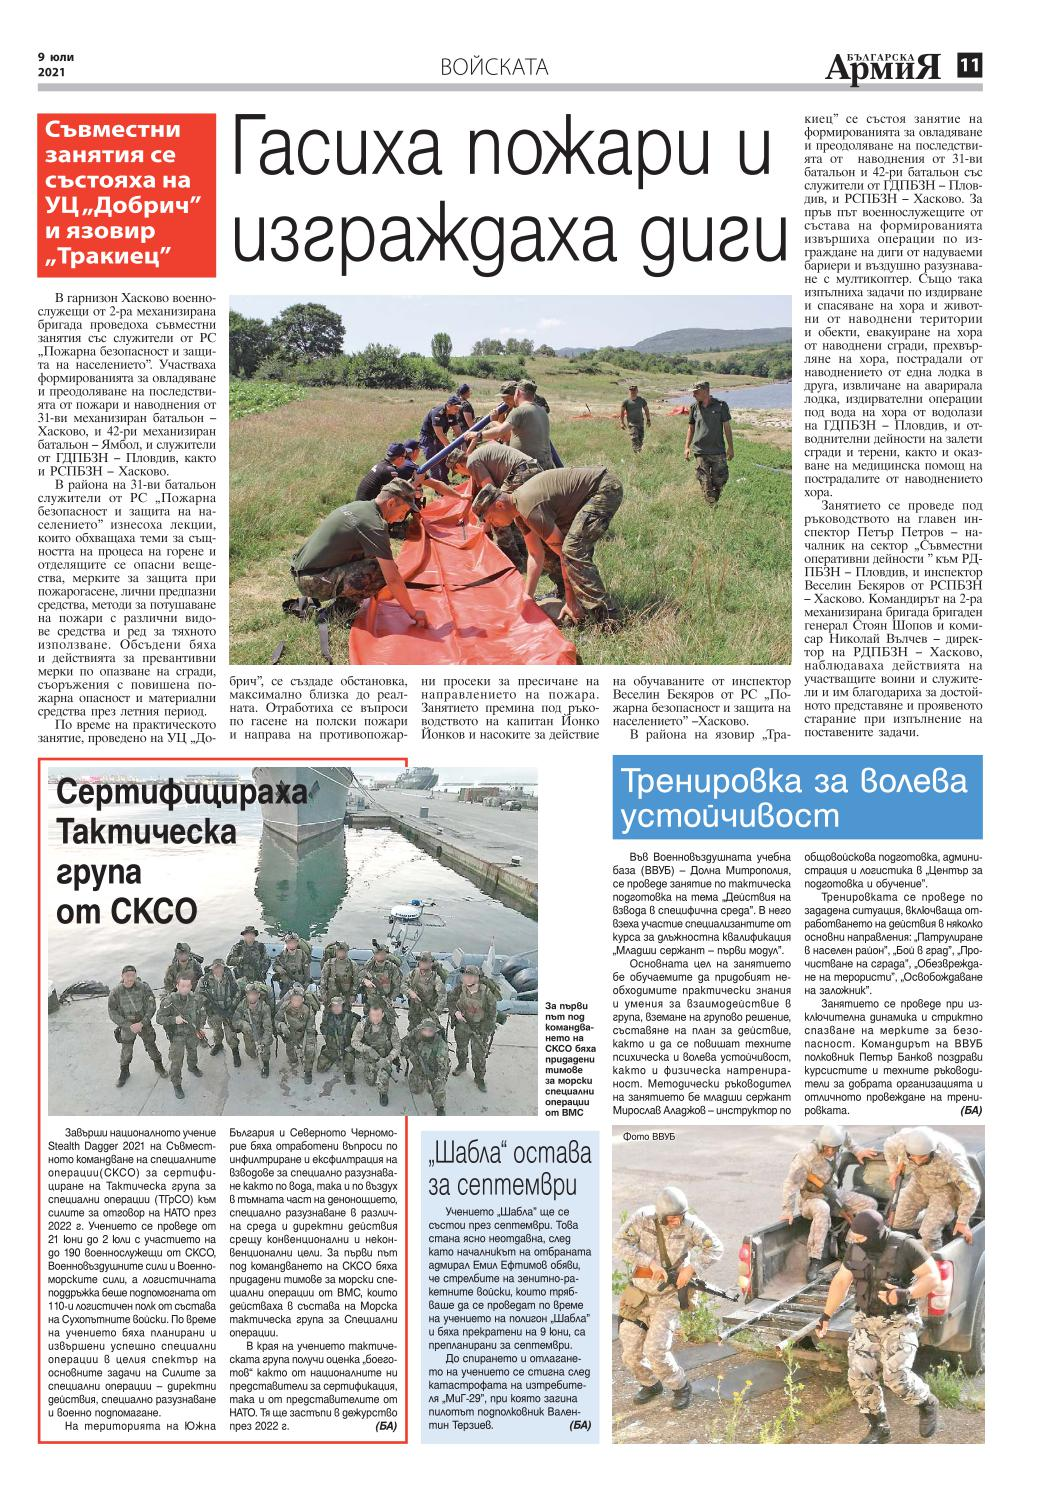 https://armymedia.bg/wp-content/uploads/2021/07/11.page1_-1.jpg